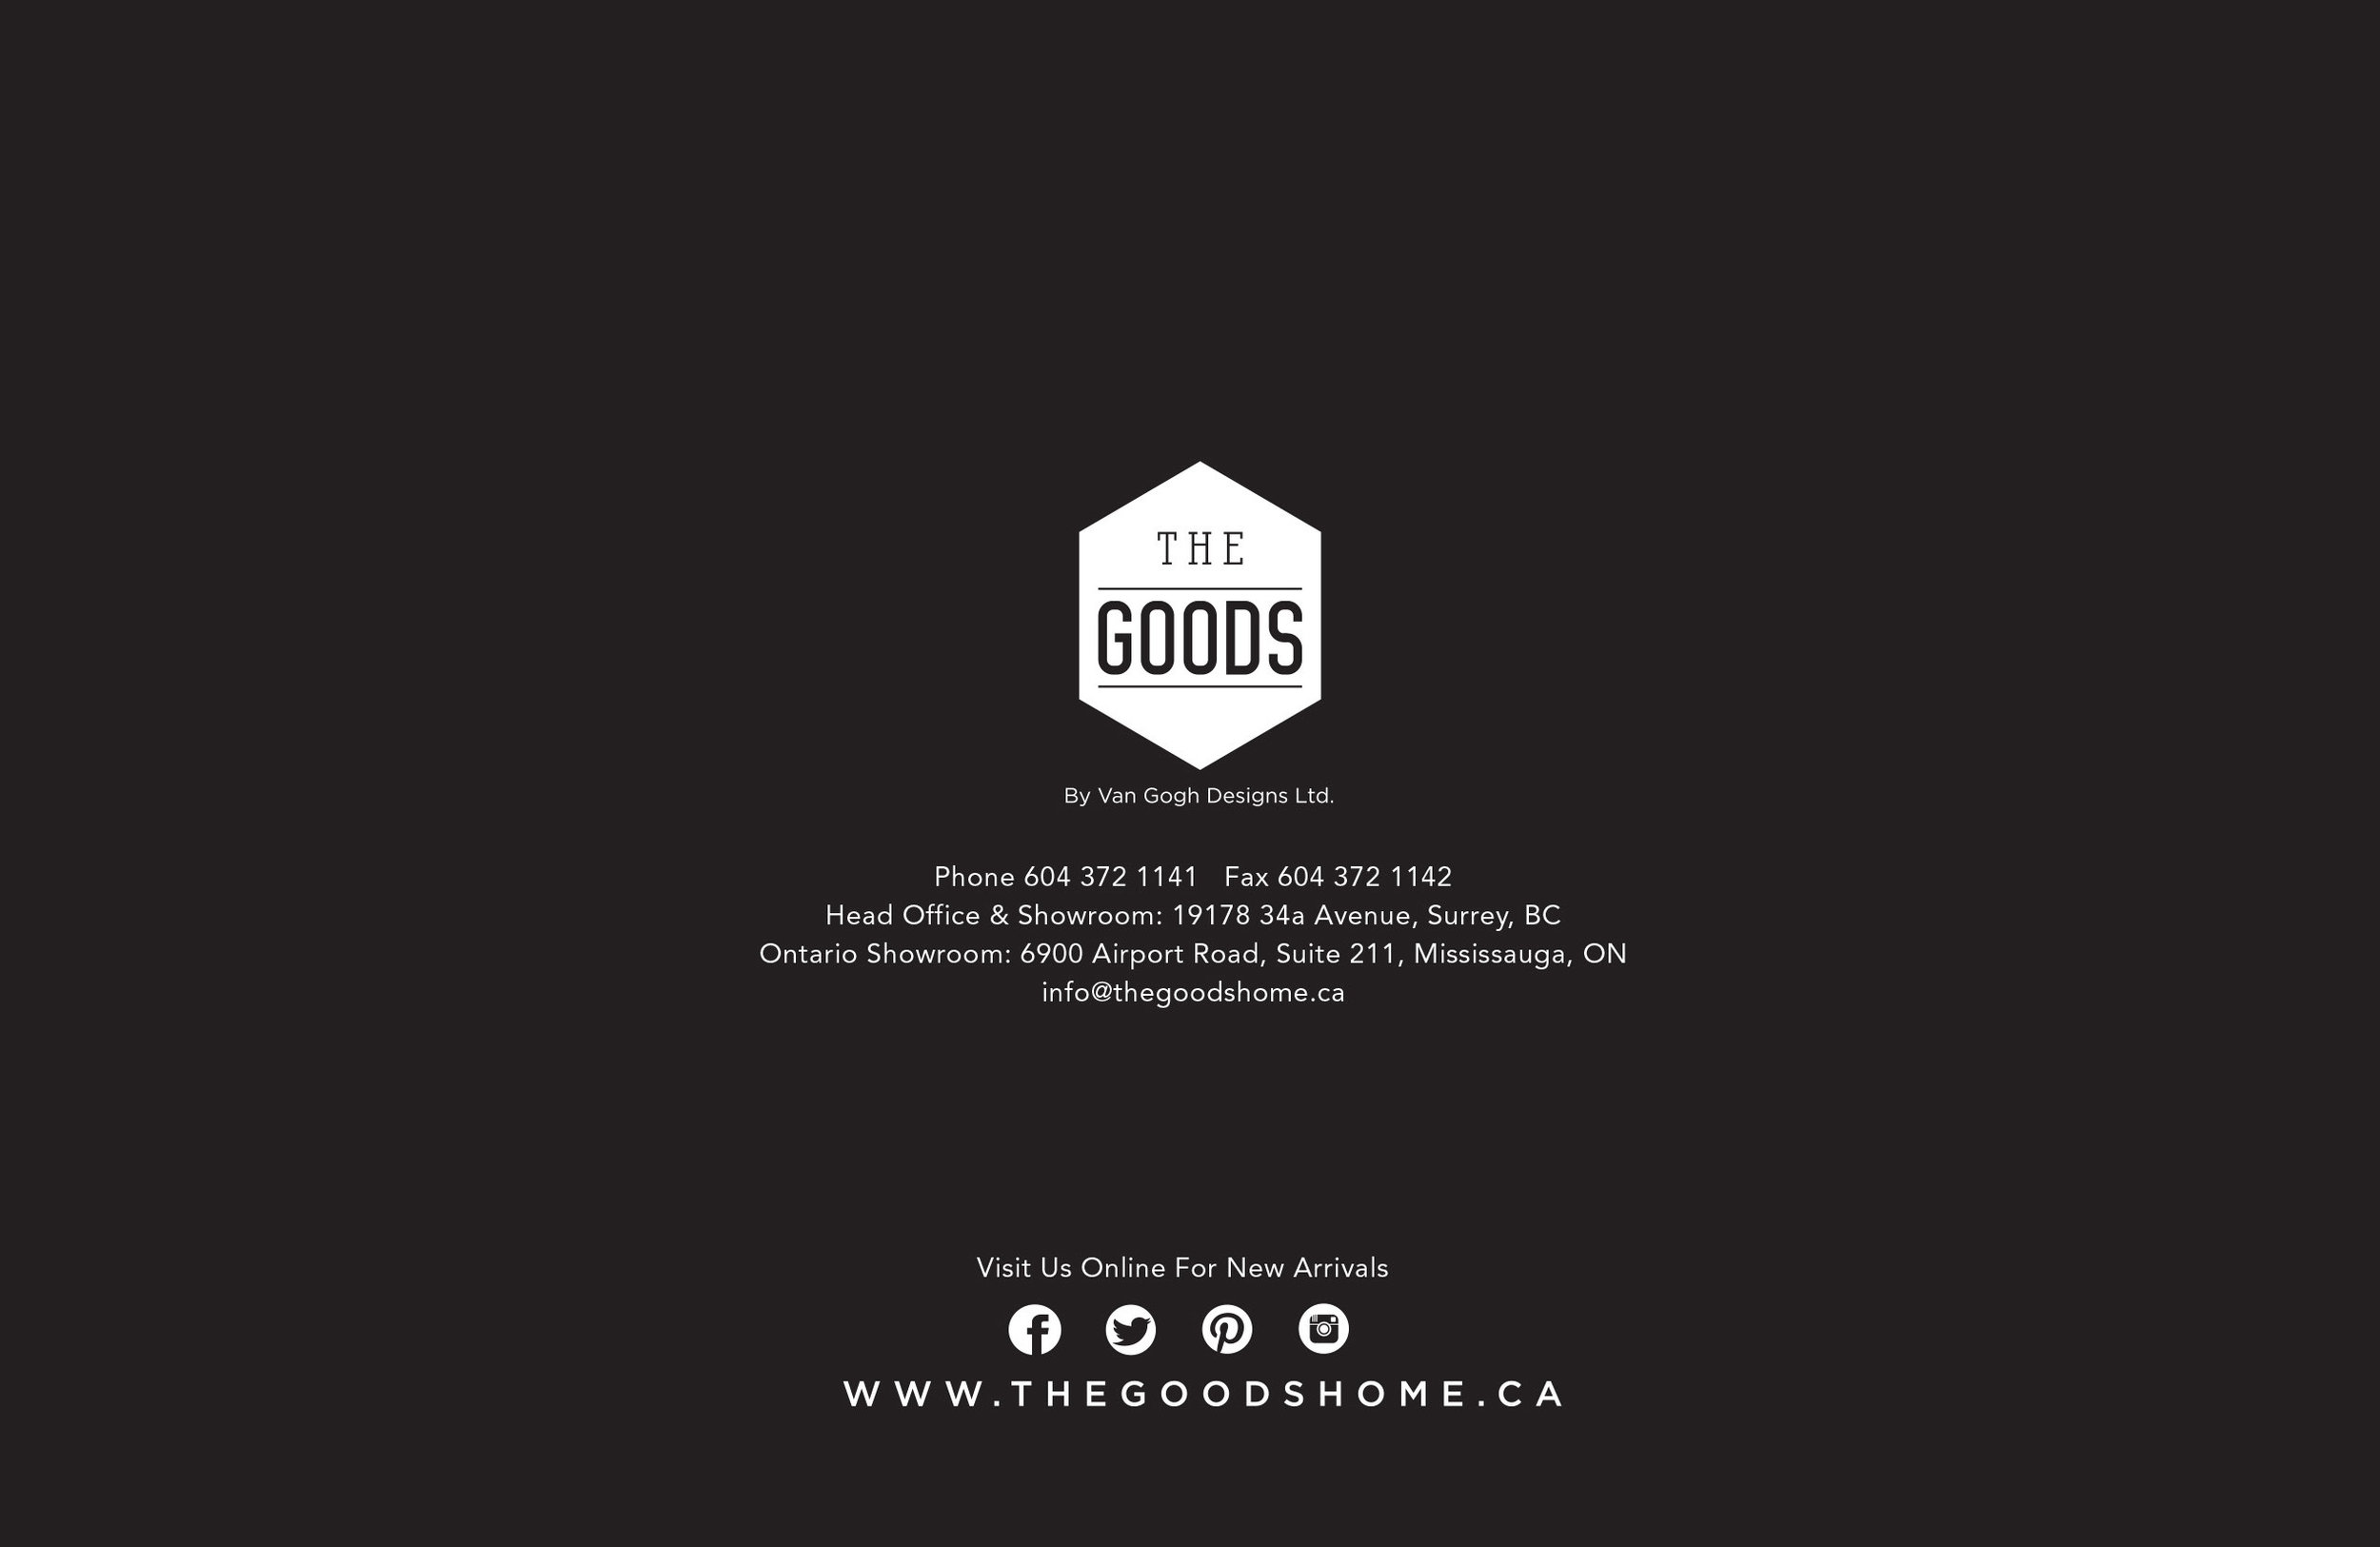 The Goods Catalogue Covers 3.jpg